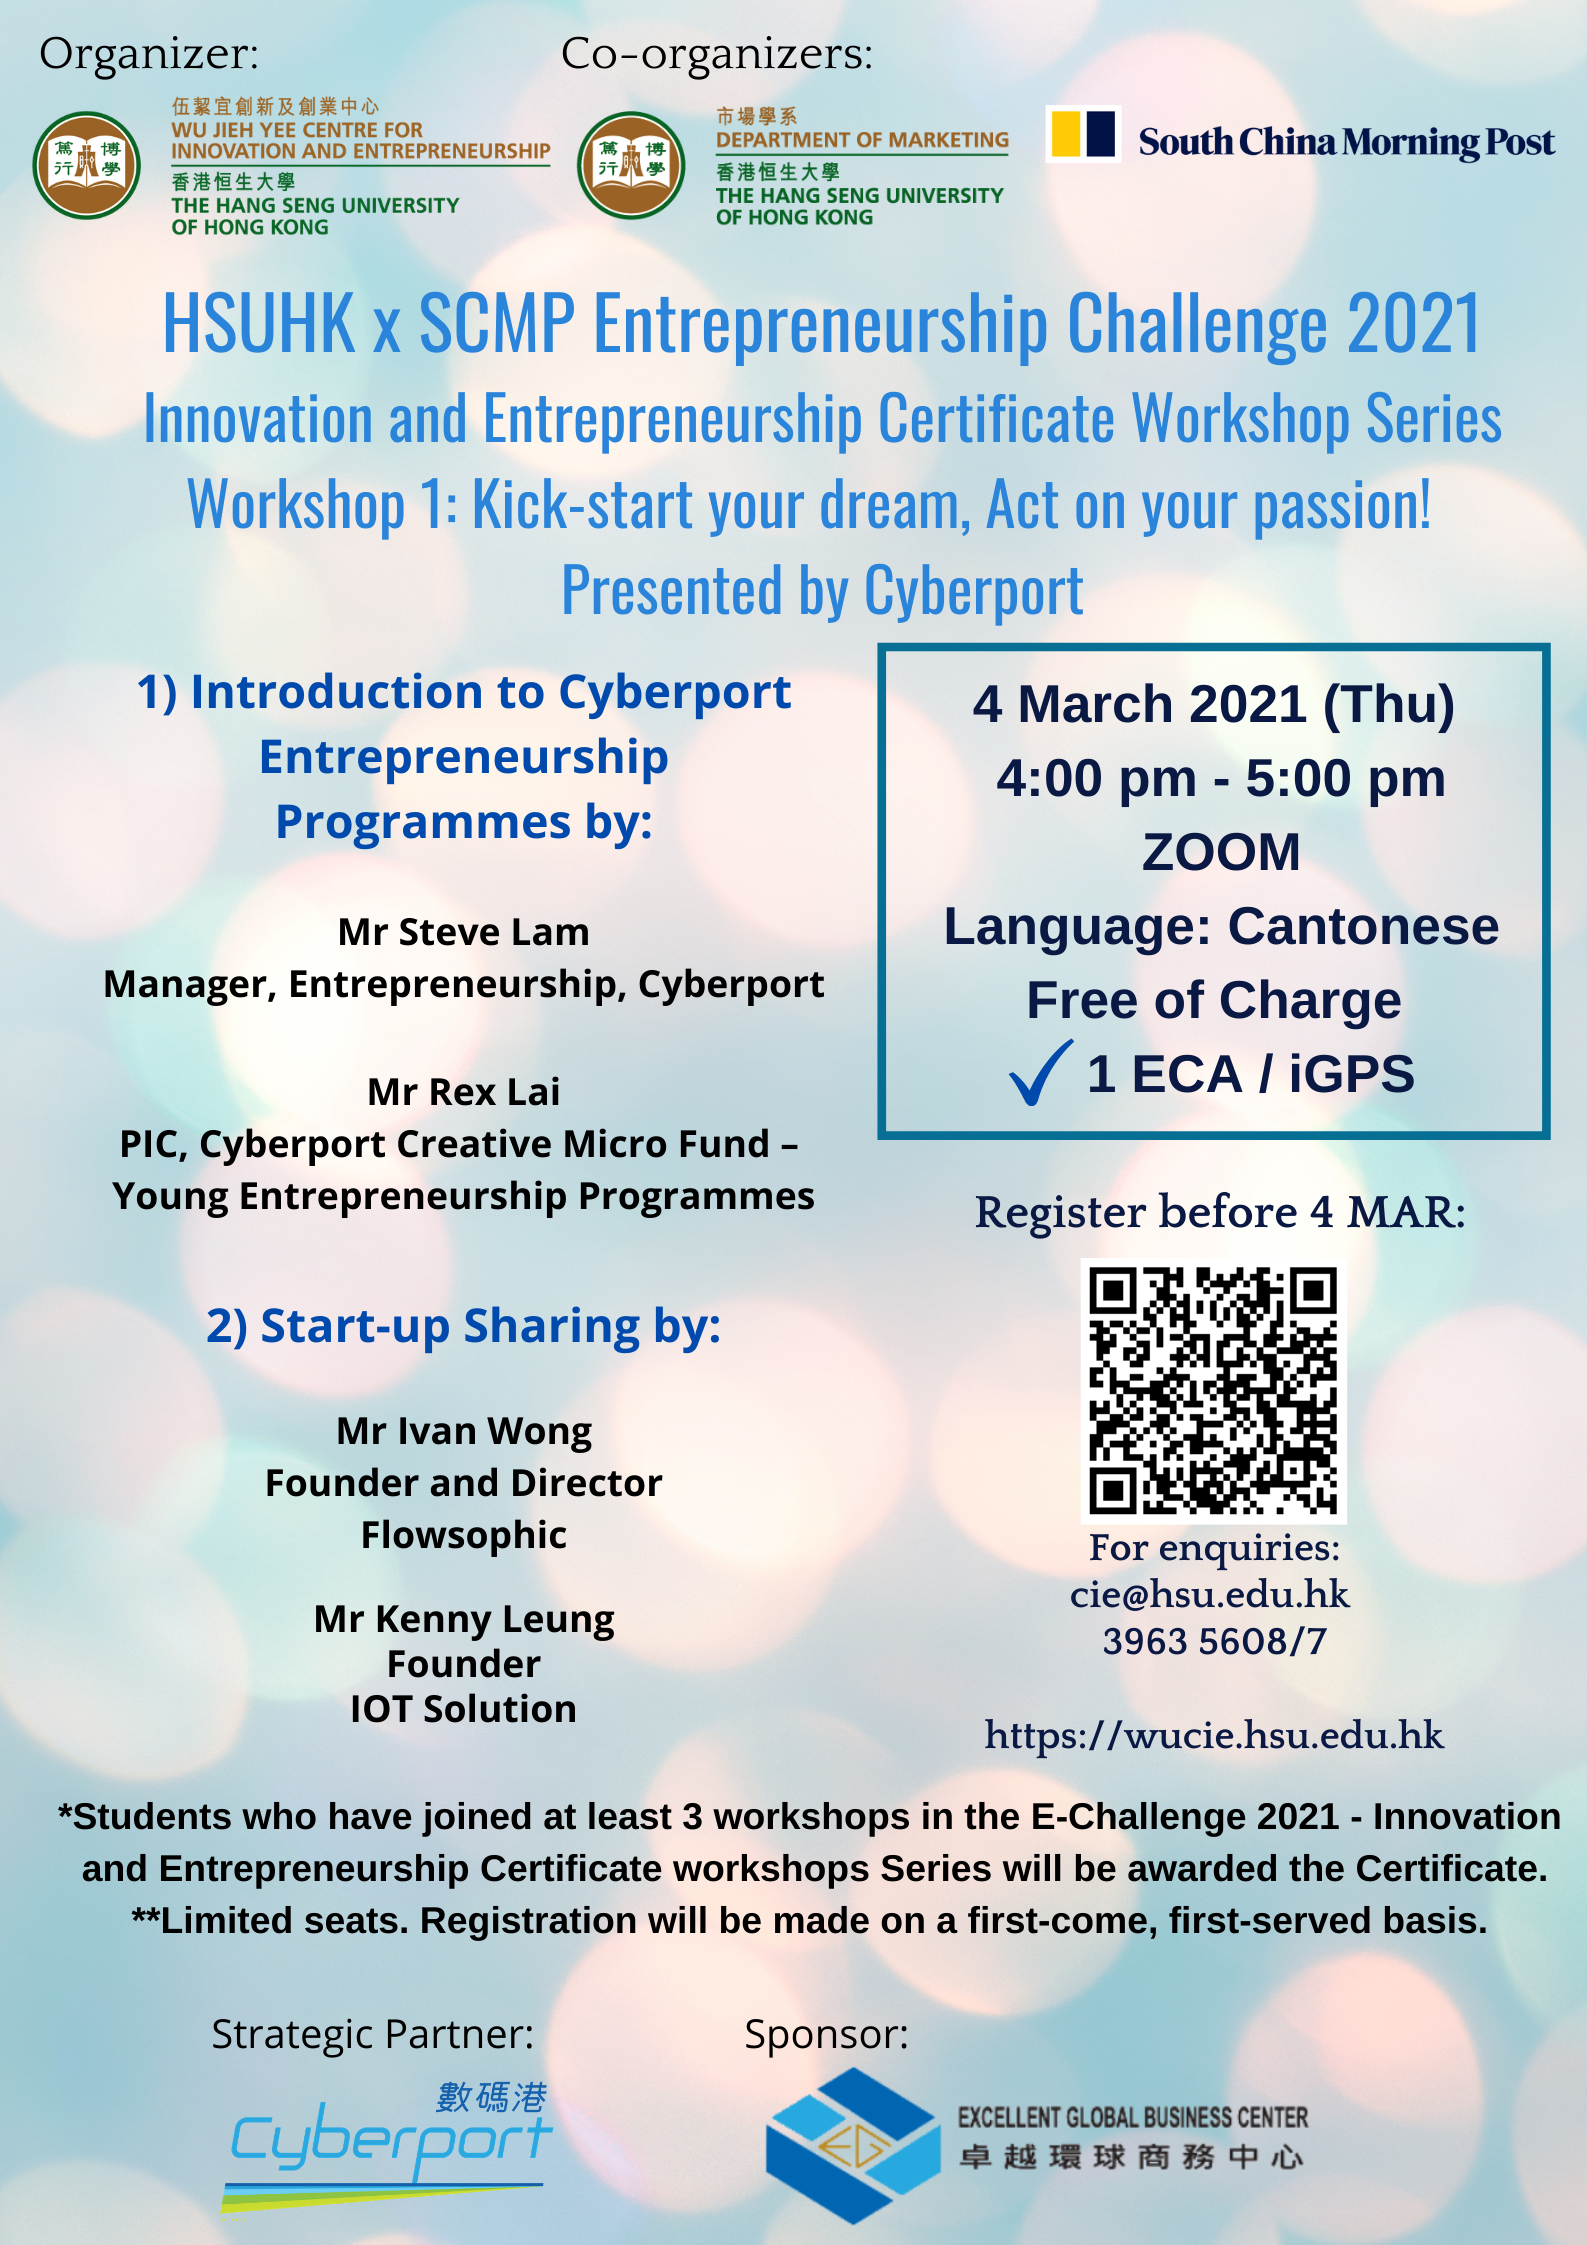 Ver.2 Draft Poster - E-Challenge 2021 - Cyberport Training workshop (4 Mar 2021)